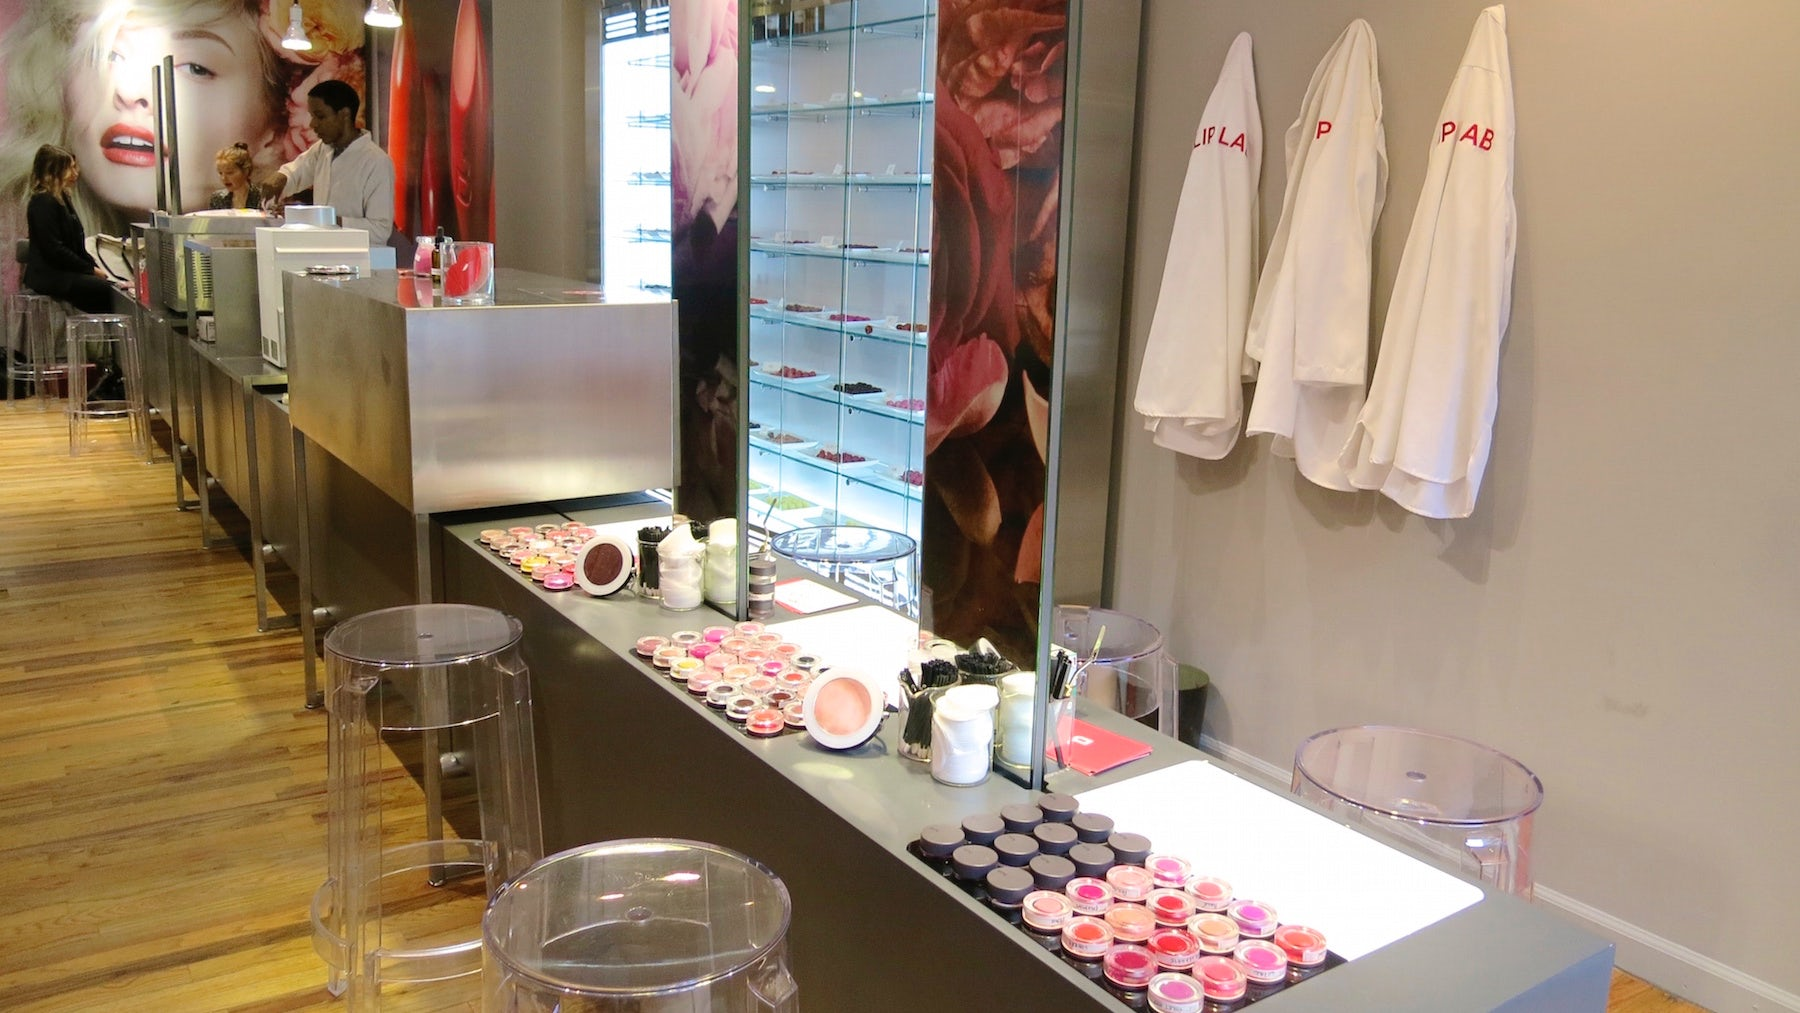 Inside Bite Beauty's lab in New York, where shoppers can create their own lipstick shades | Source: Courtesy